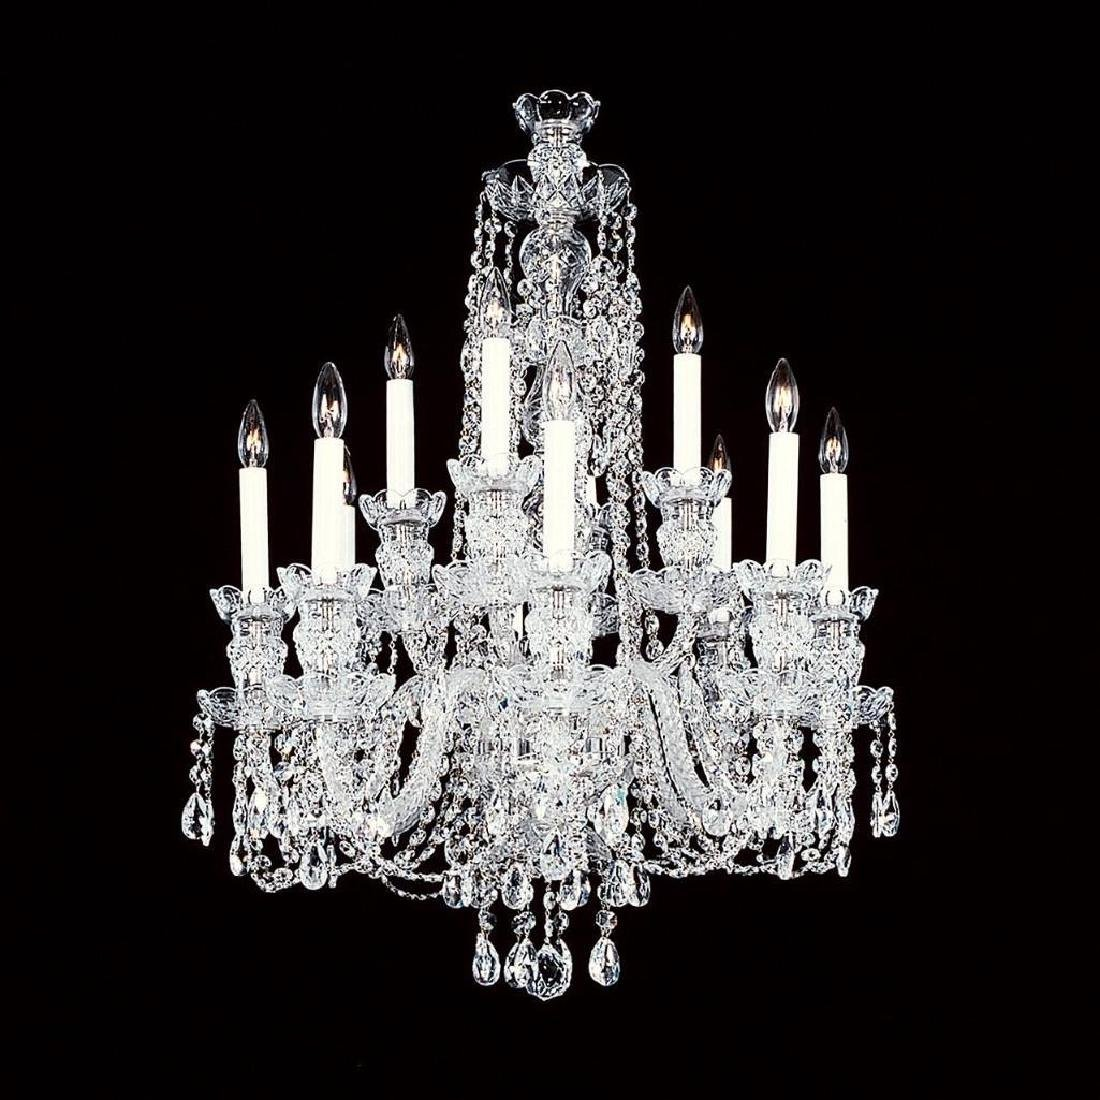 4 Small 12 Light Crystal Chandelier with Swarovski